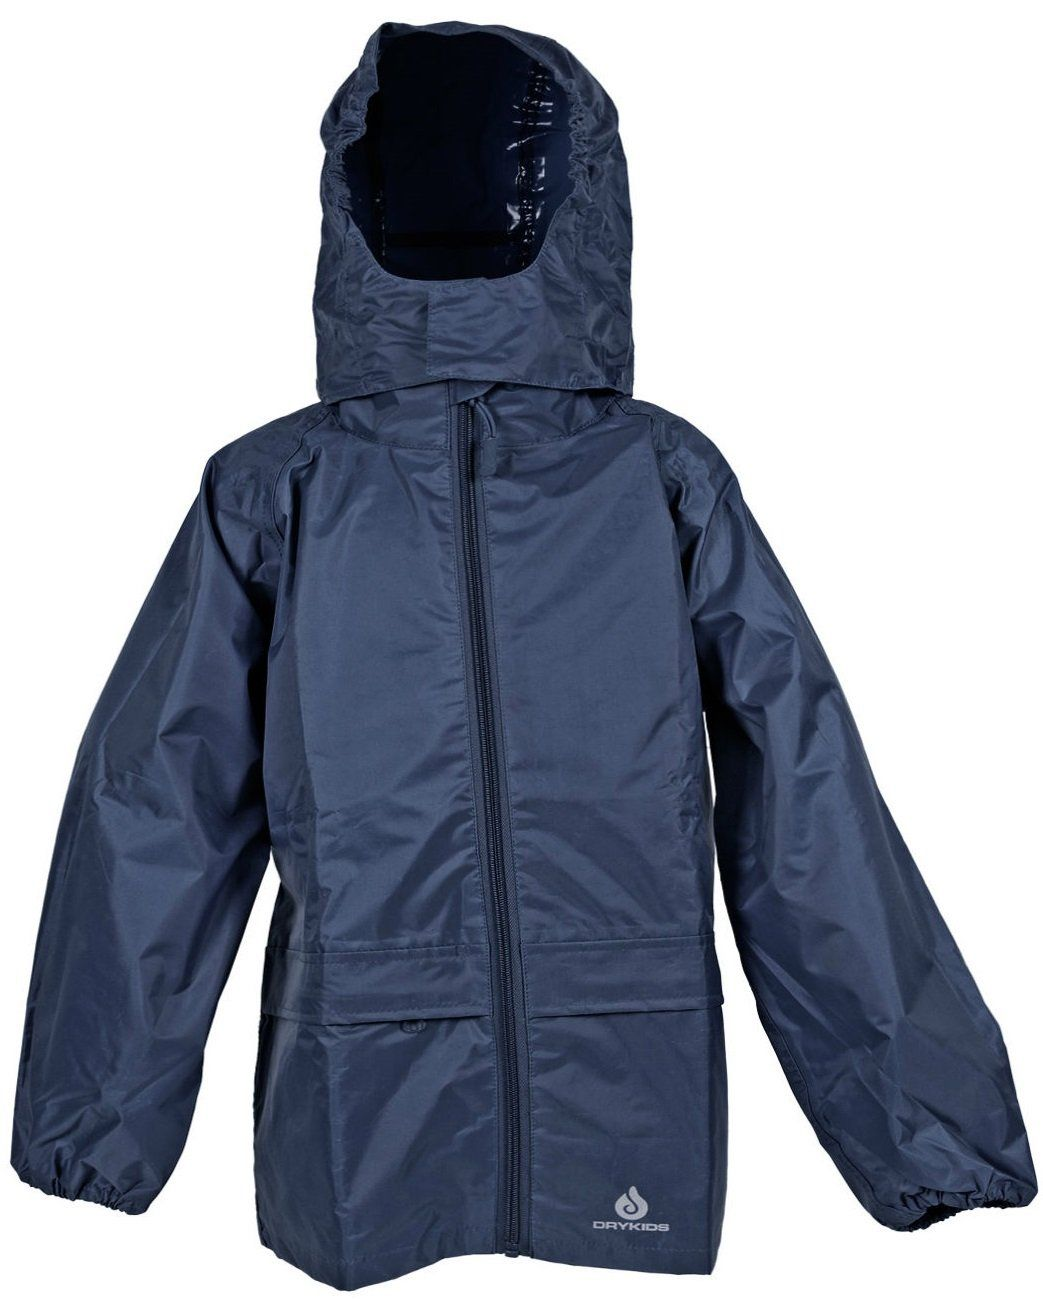 45eaafda2 DRY KIDS Boys  Packable Jacket 7-8 Years Navy Blue. DELIVERED IN 5 ...